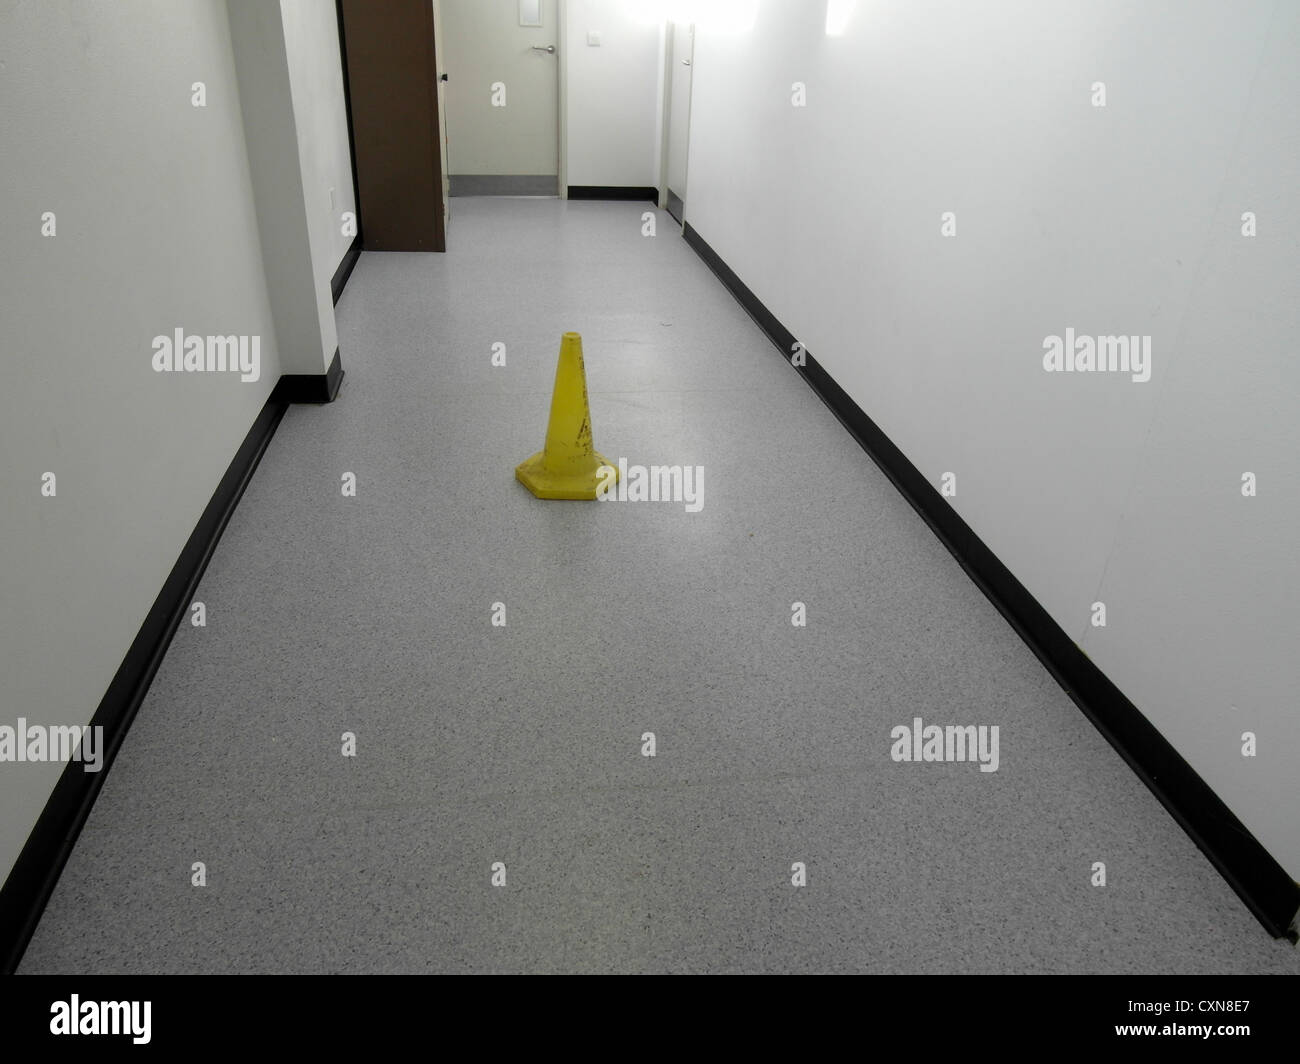 Yellow warning cone on the floor in a corridor. - Stock Image